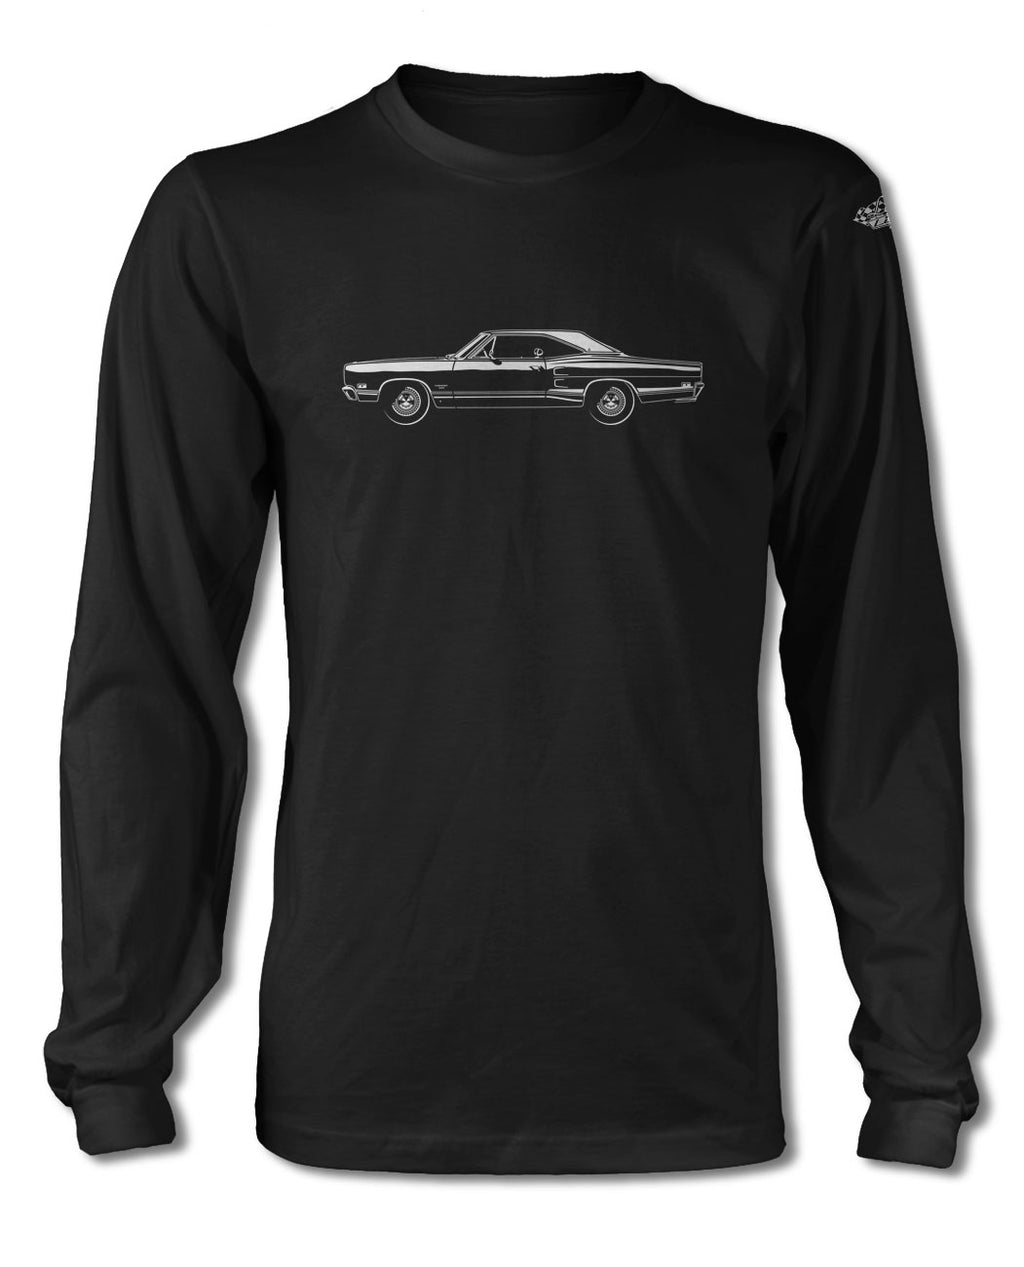 1969 Dodge Coronet 440 Hardtop T-Shirt - Long Sleeves - Side View